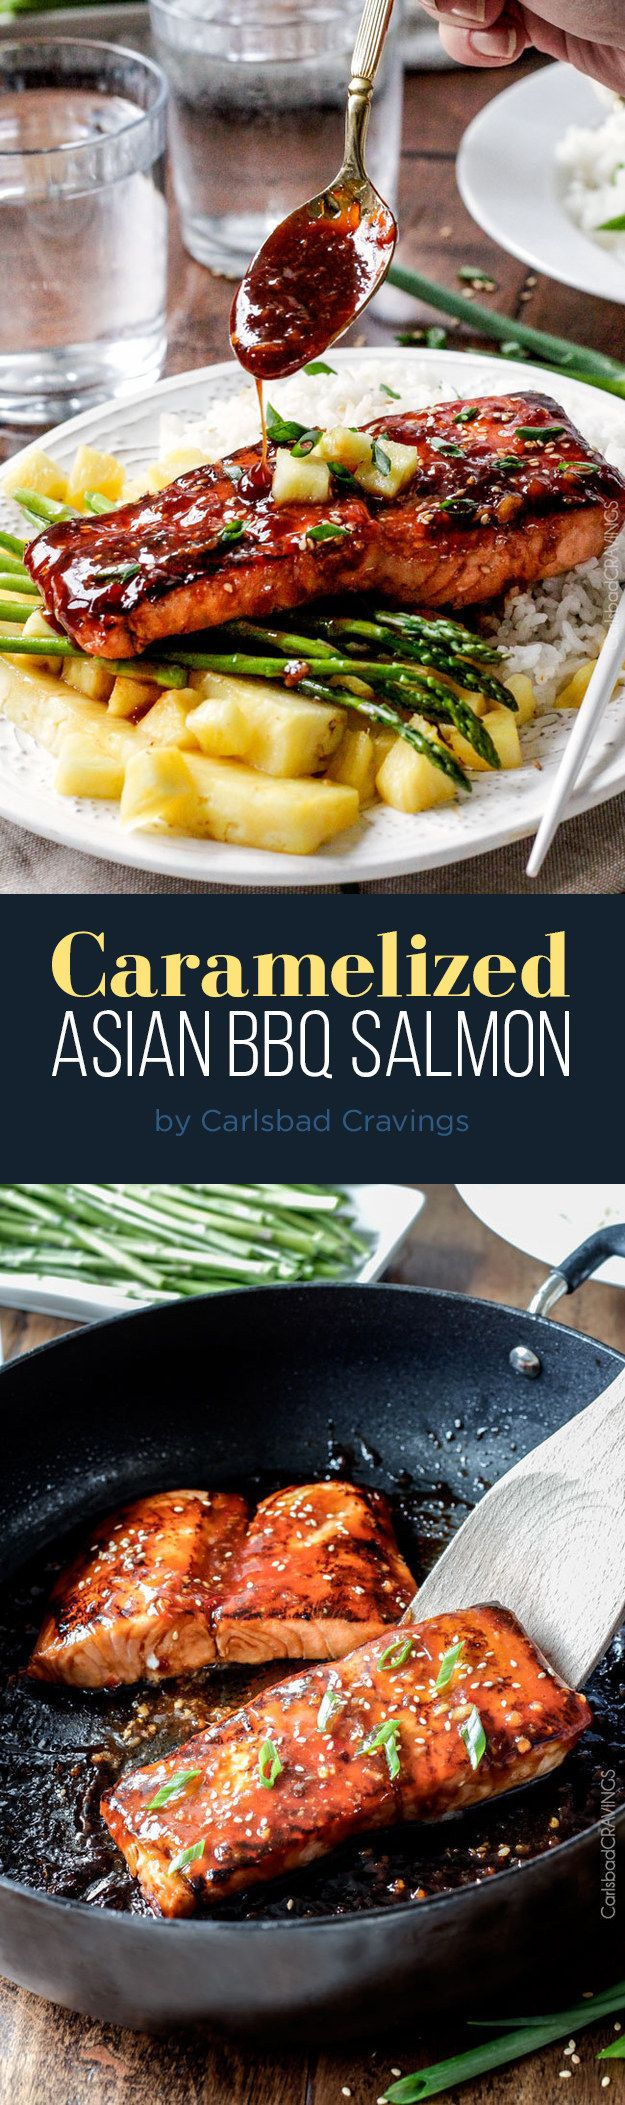 Caramelized Asian BBQ Salmon | 7 Easy Dinner Ideas To Try This Week